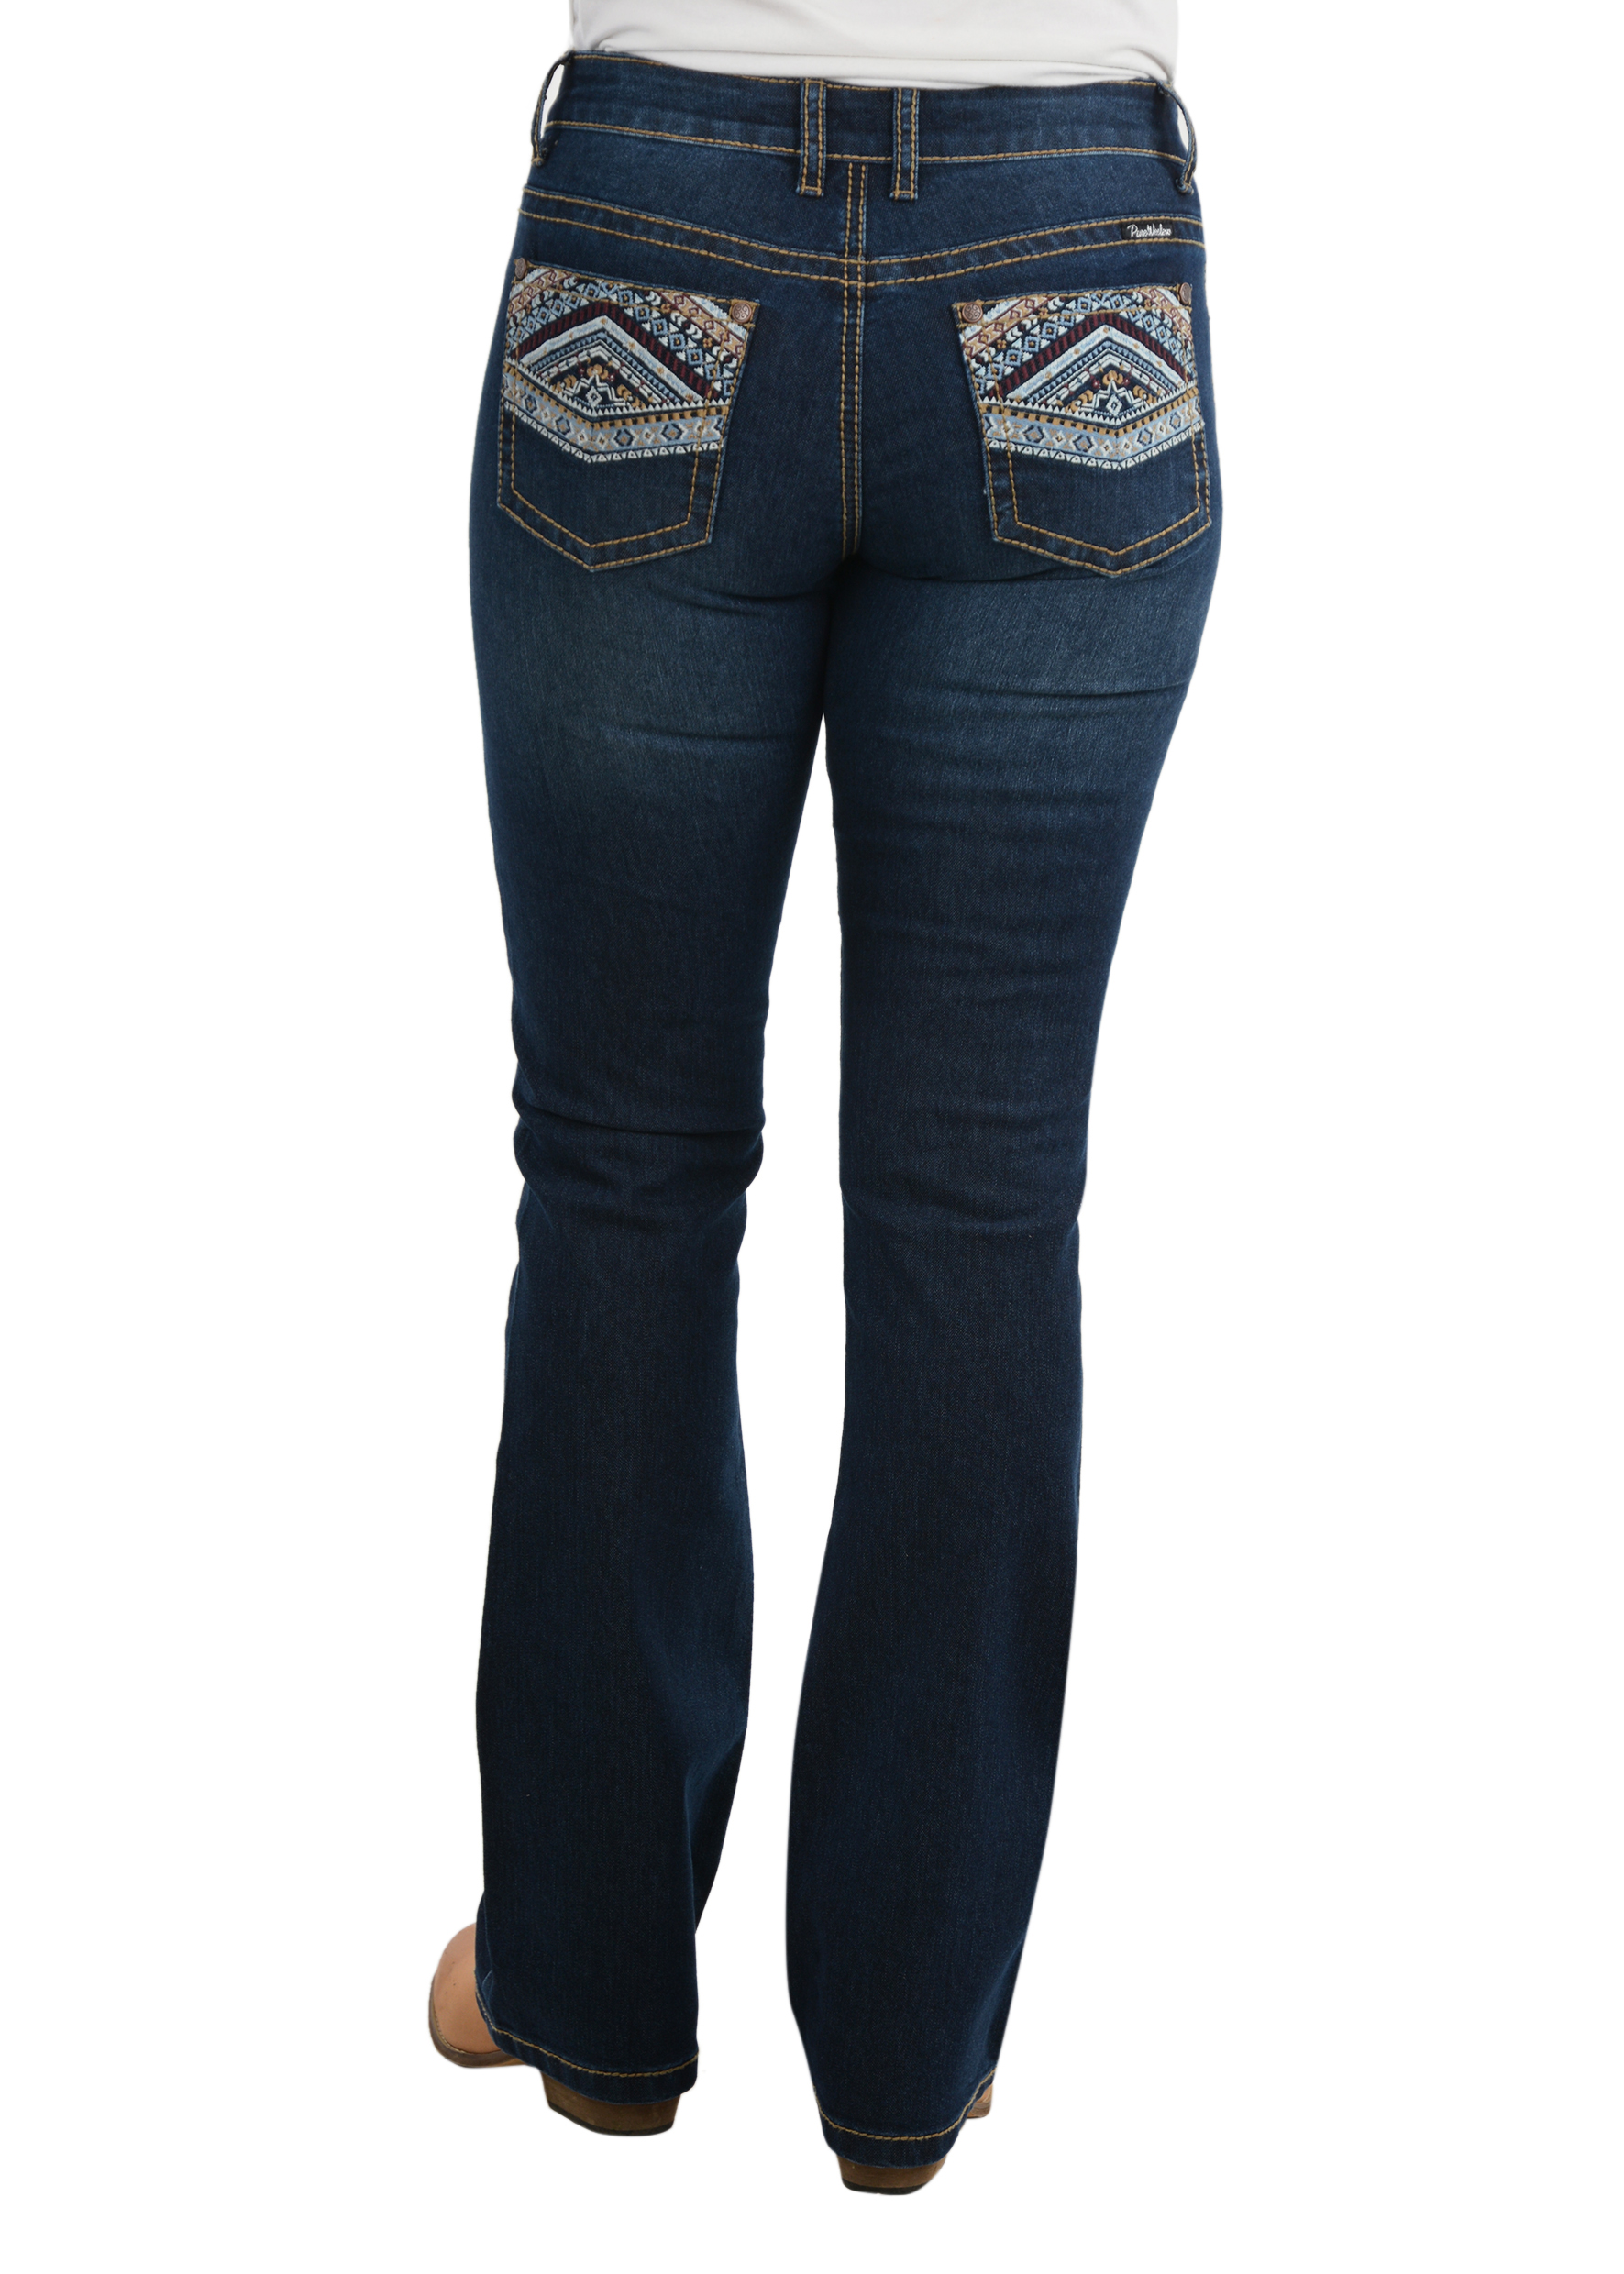 Pure Western Martina Boot Cut Jean Size 16 at Bowral Coop